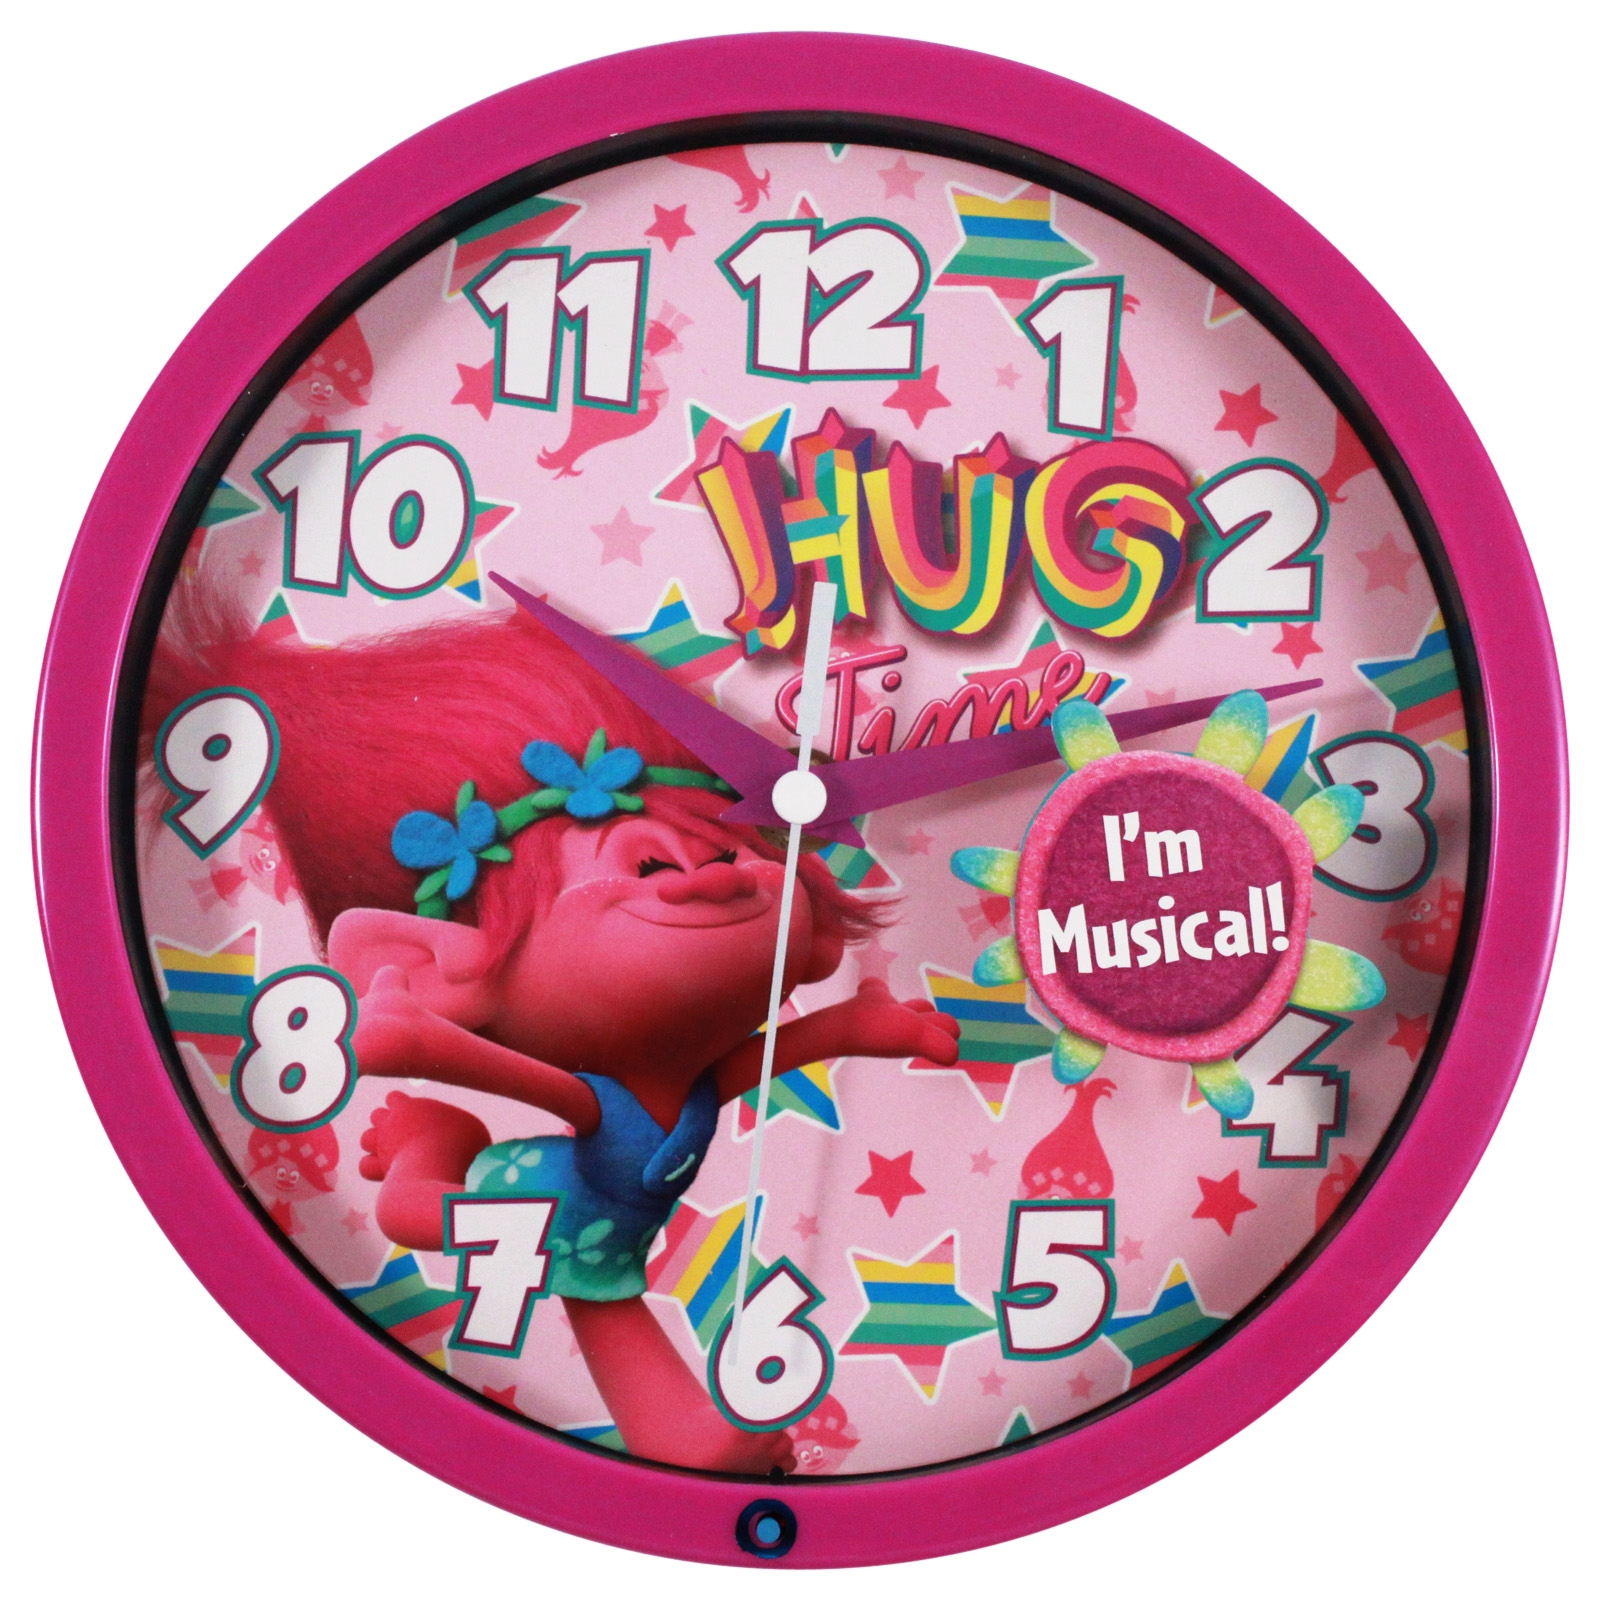 Wall clocks for kids rooms dreamworks trolls 8 inch musical wall clock kids room decor amipublicfo Gallery